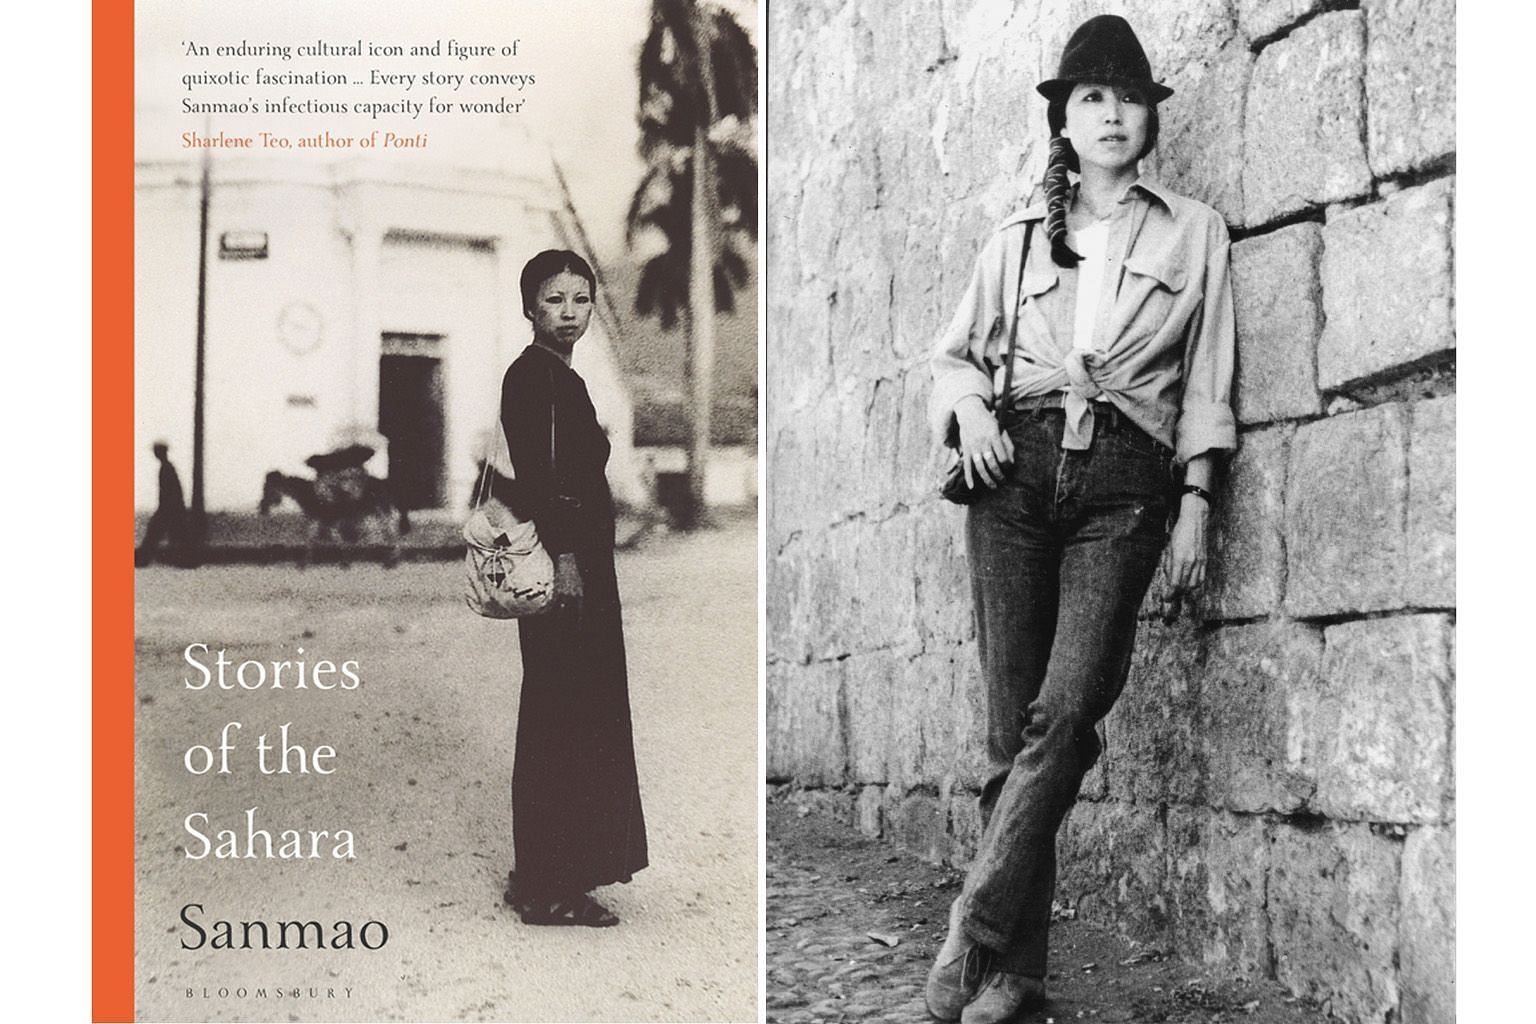 Stories Of The Sahara (top) by San Mao (right), which has been translated into English by New York-based Mike Fu (above), offers a look at the beauty and desolation of the desert.